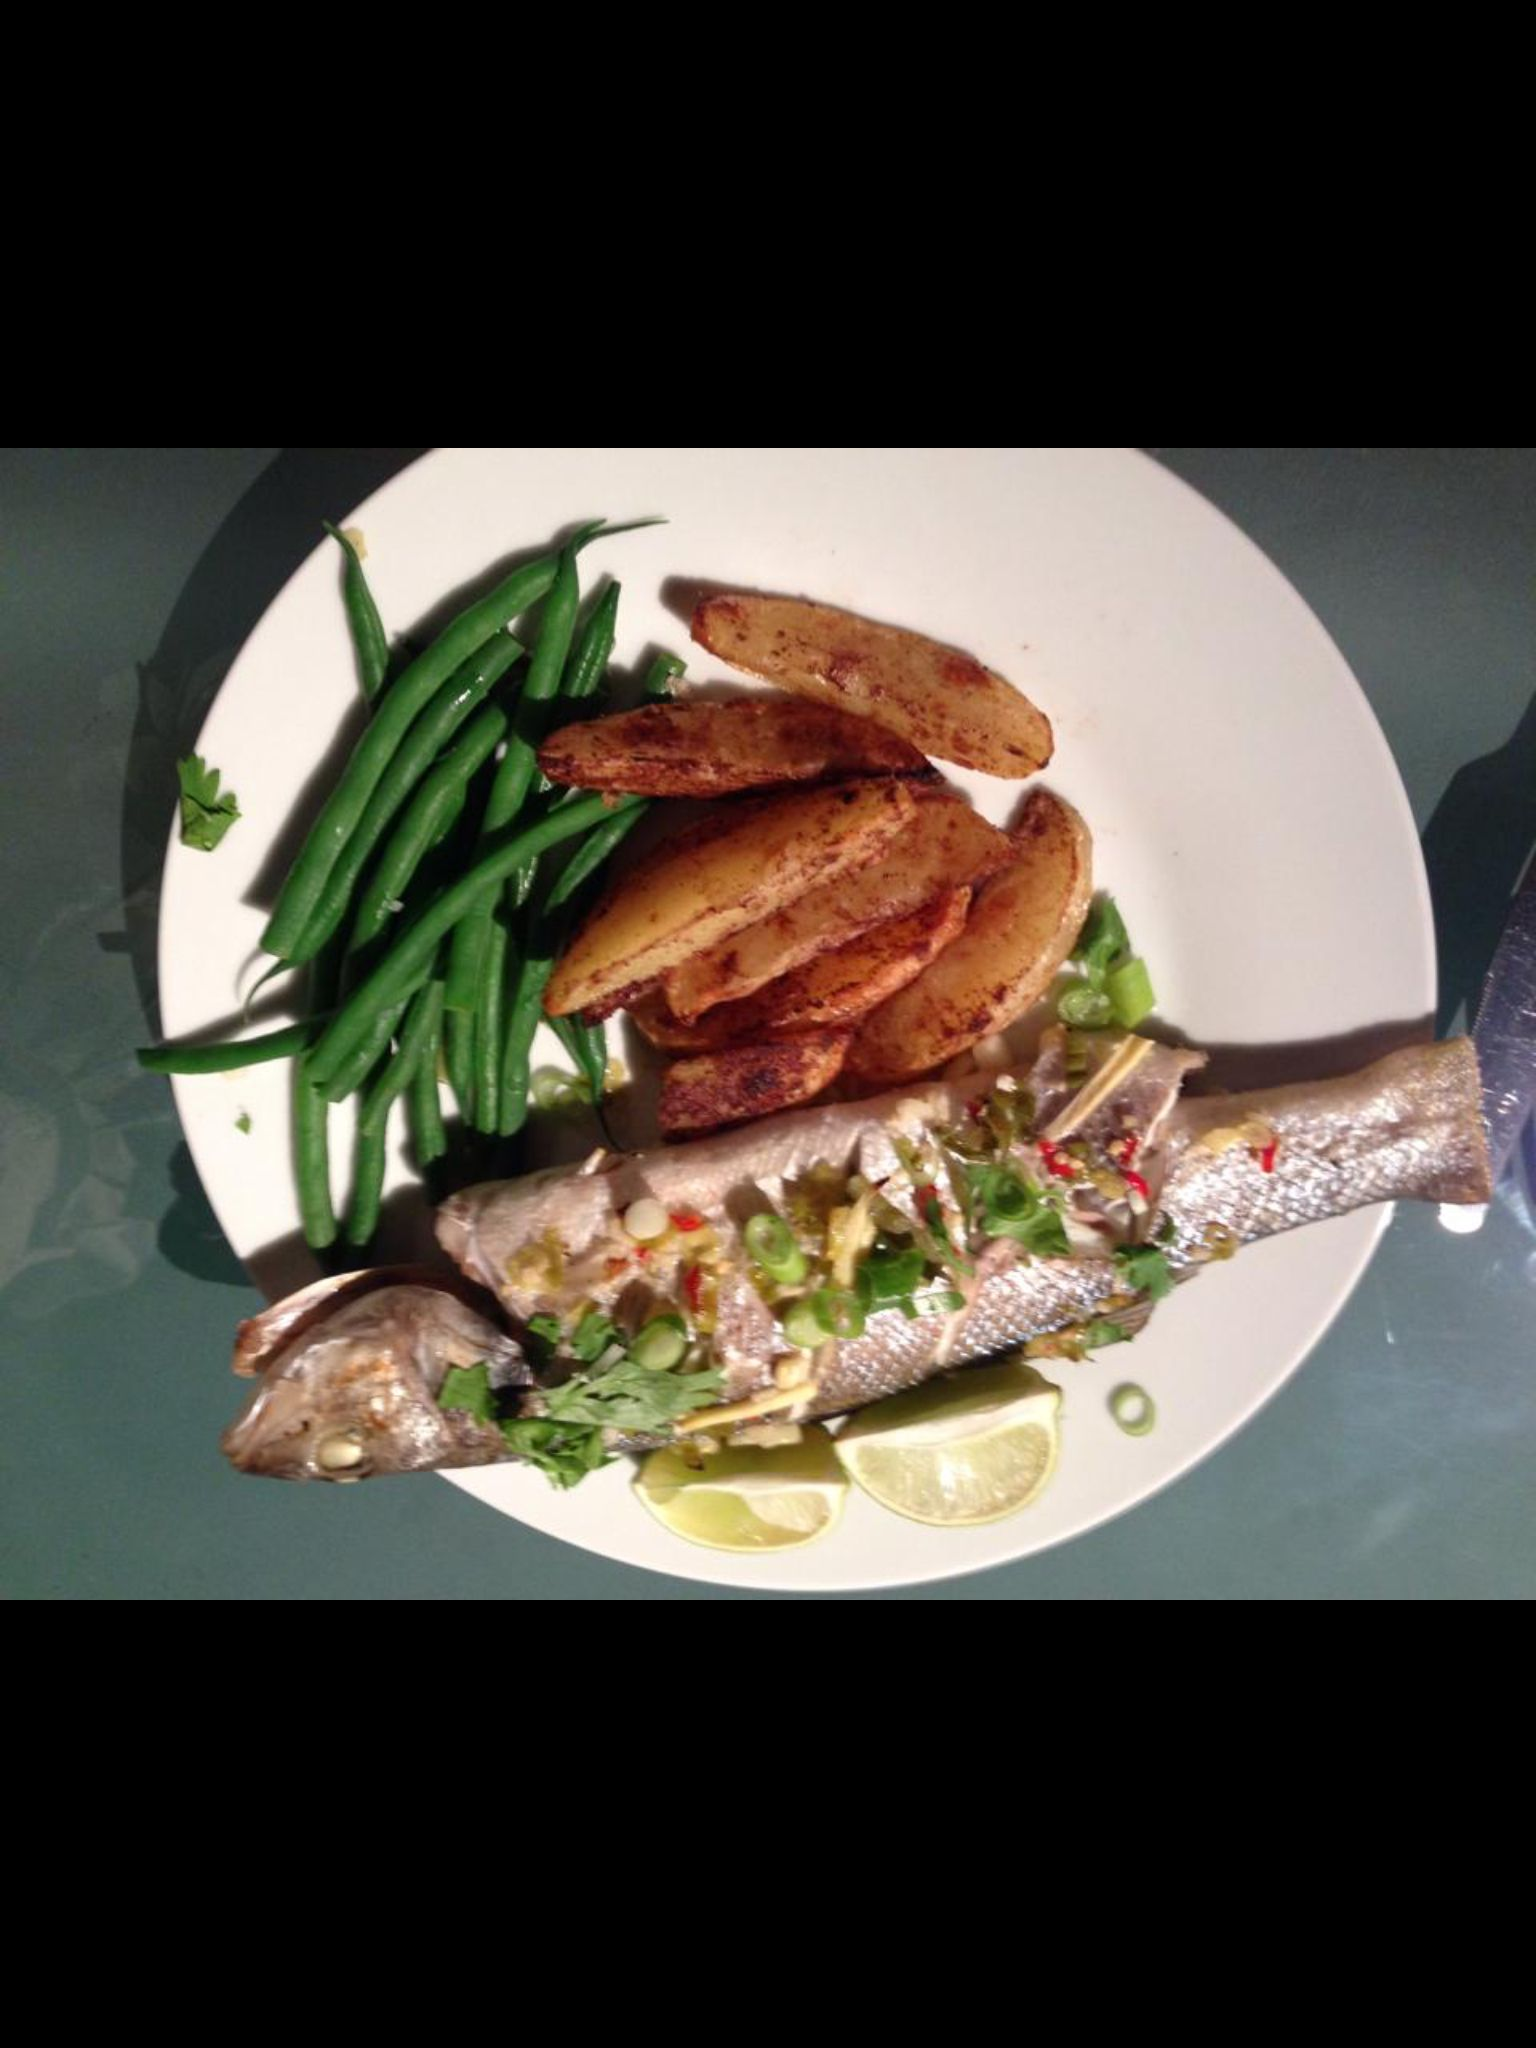 Roasted sea bass with green beans and Chinese five spice wedges.